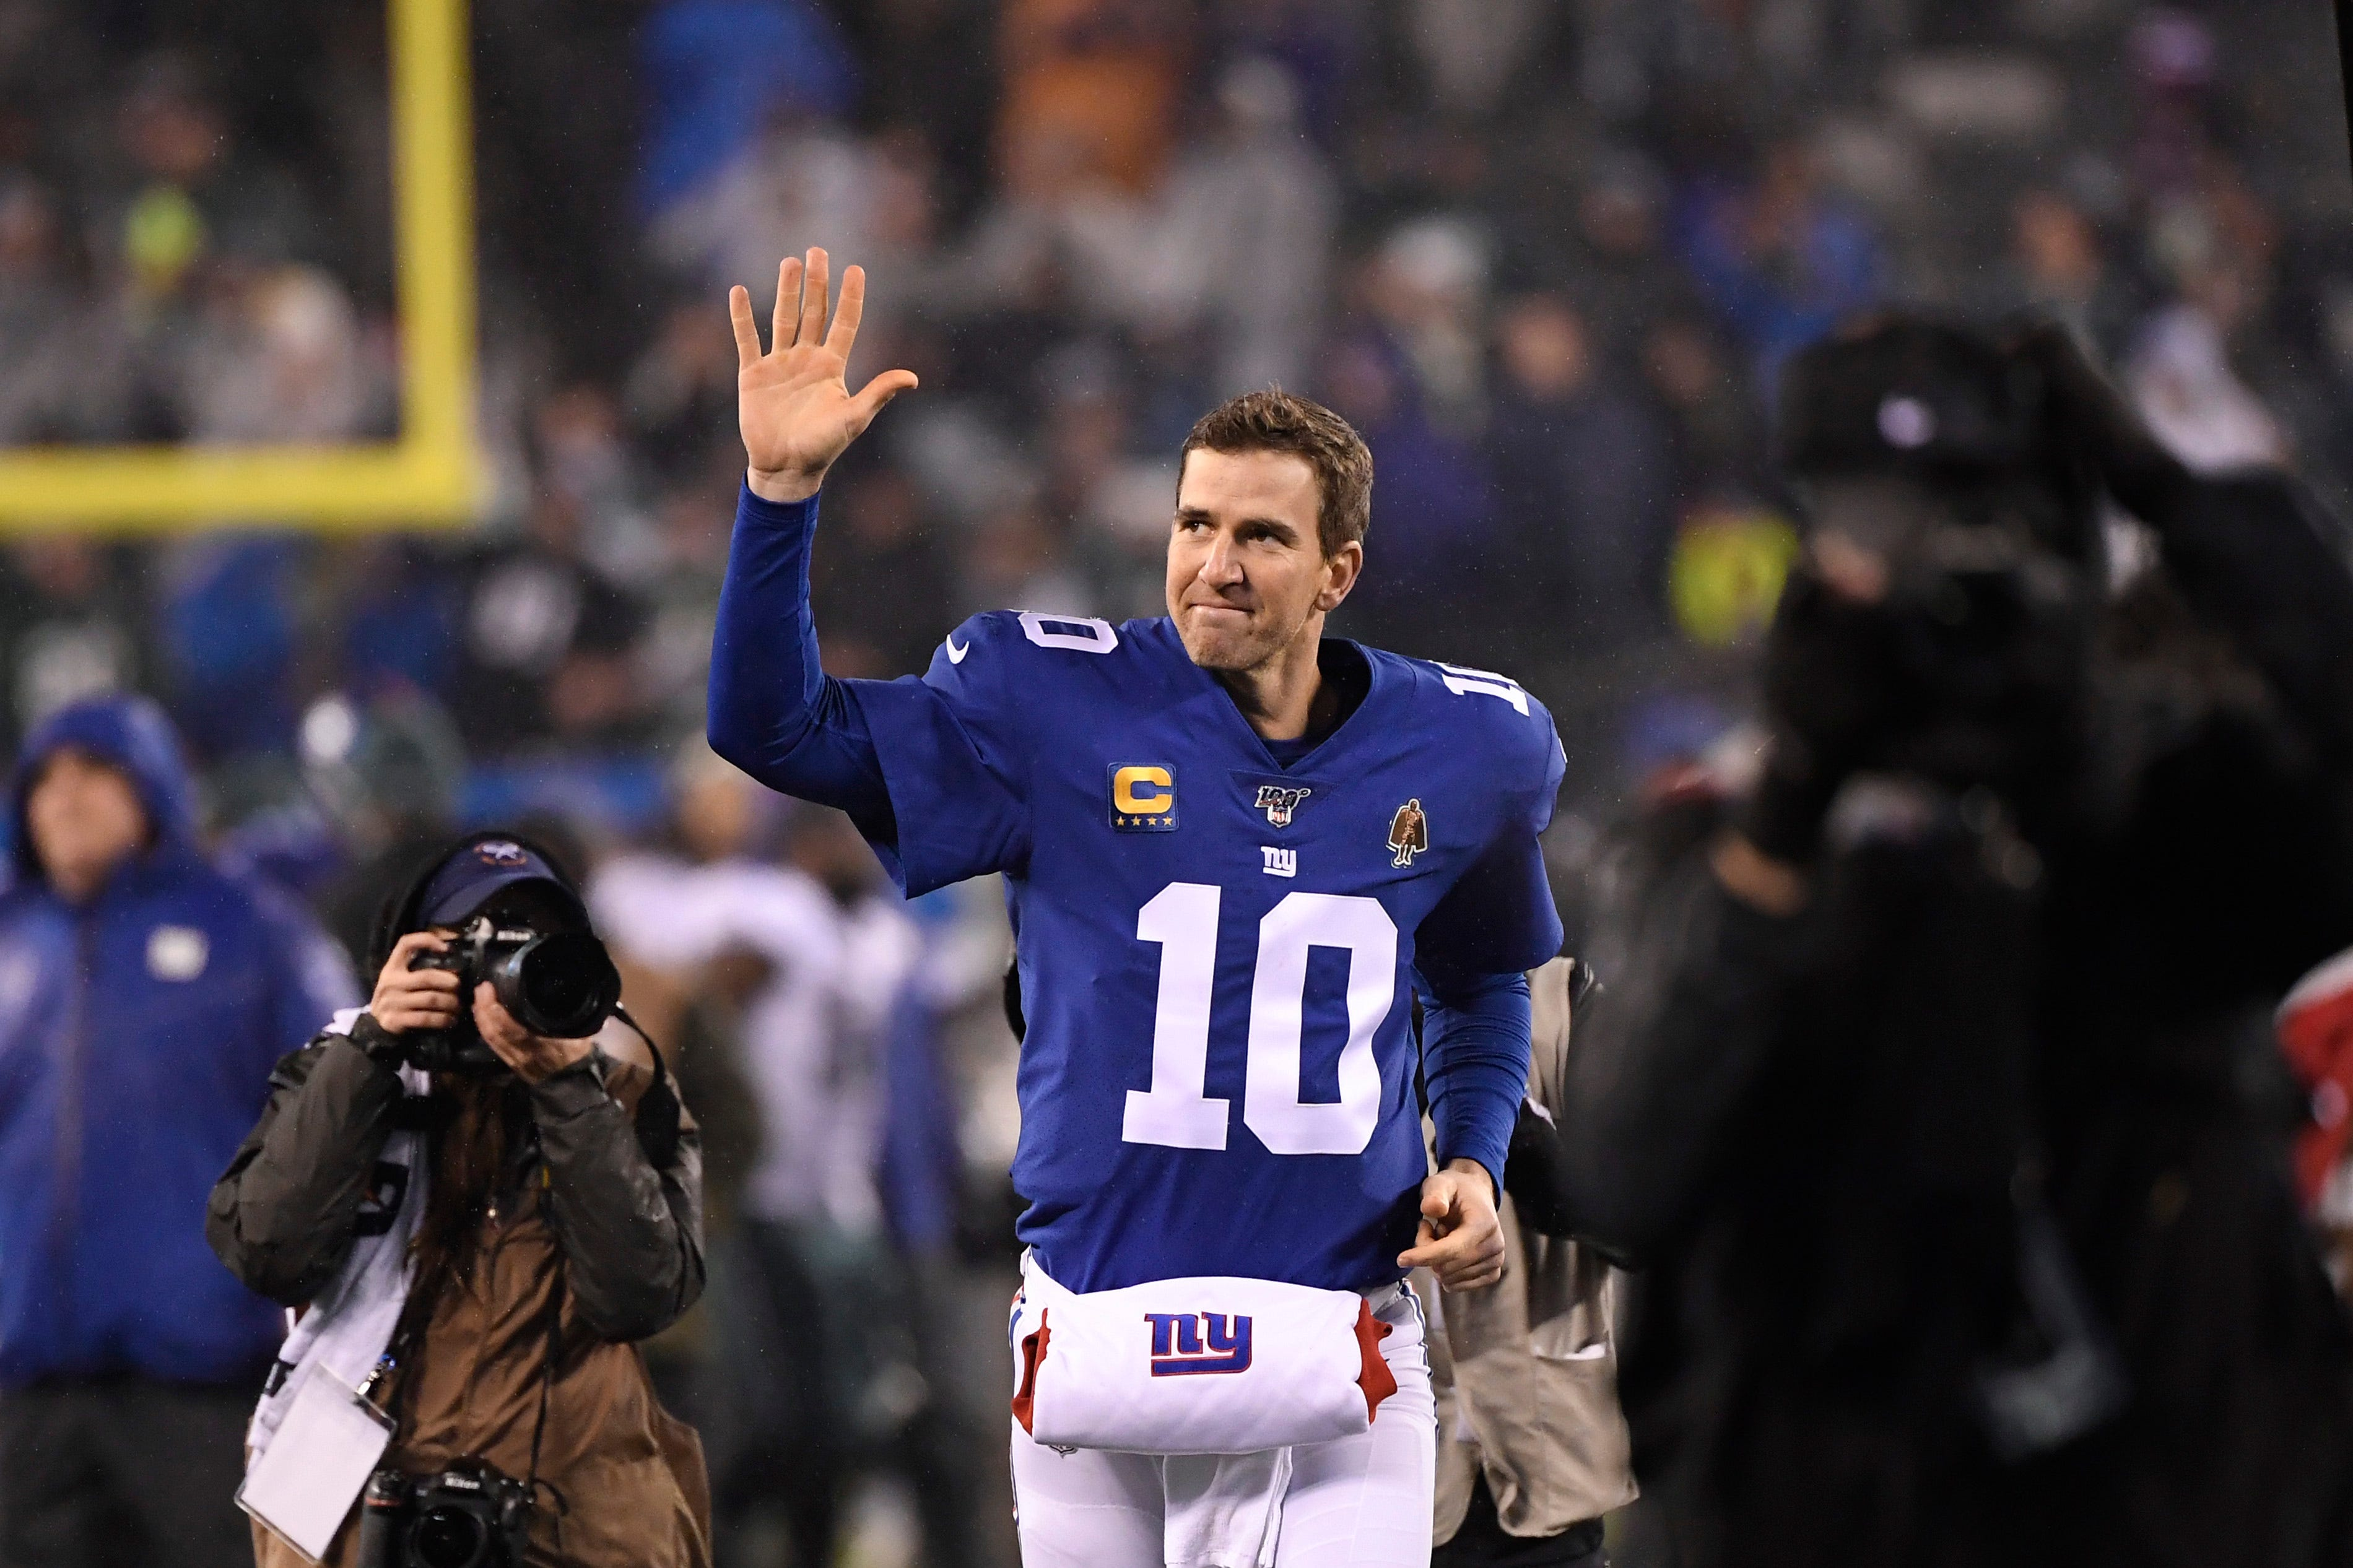 Eli Manning to rejoin Giants in business role, have jersey retired